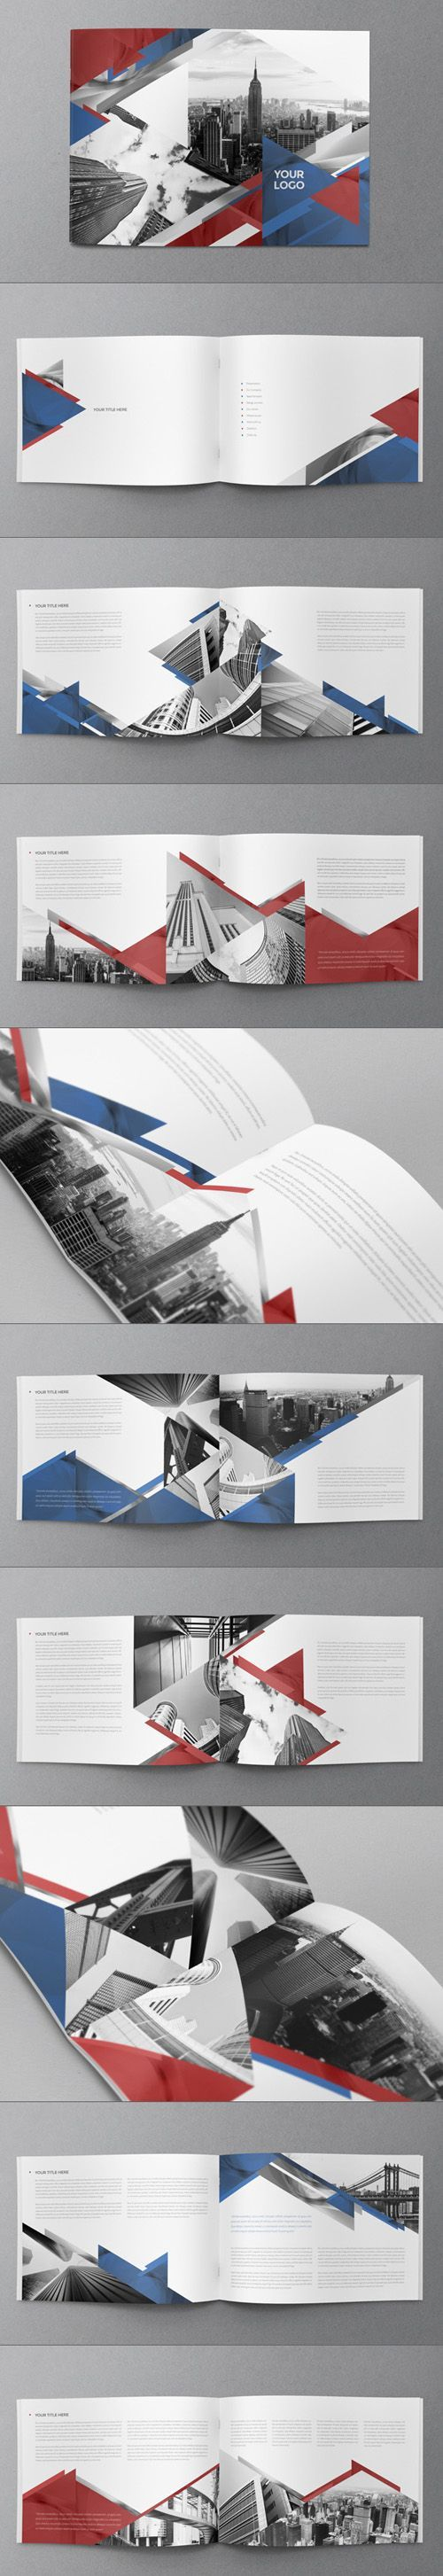 15 Creative Print Ready Business Brochure Designs | Design | Graphic Design…